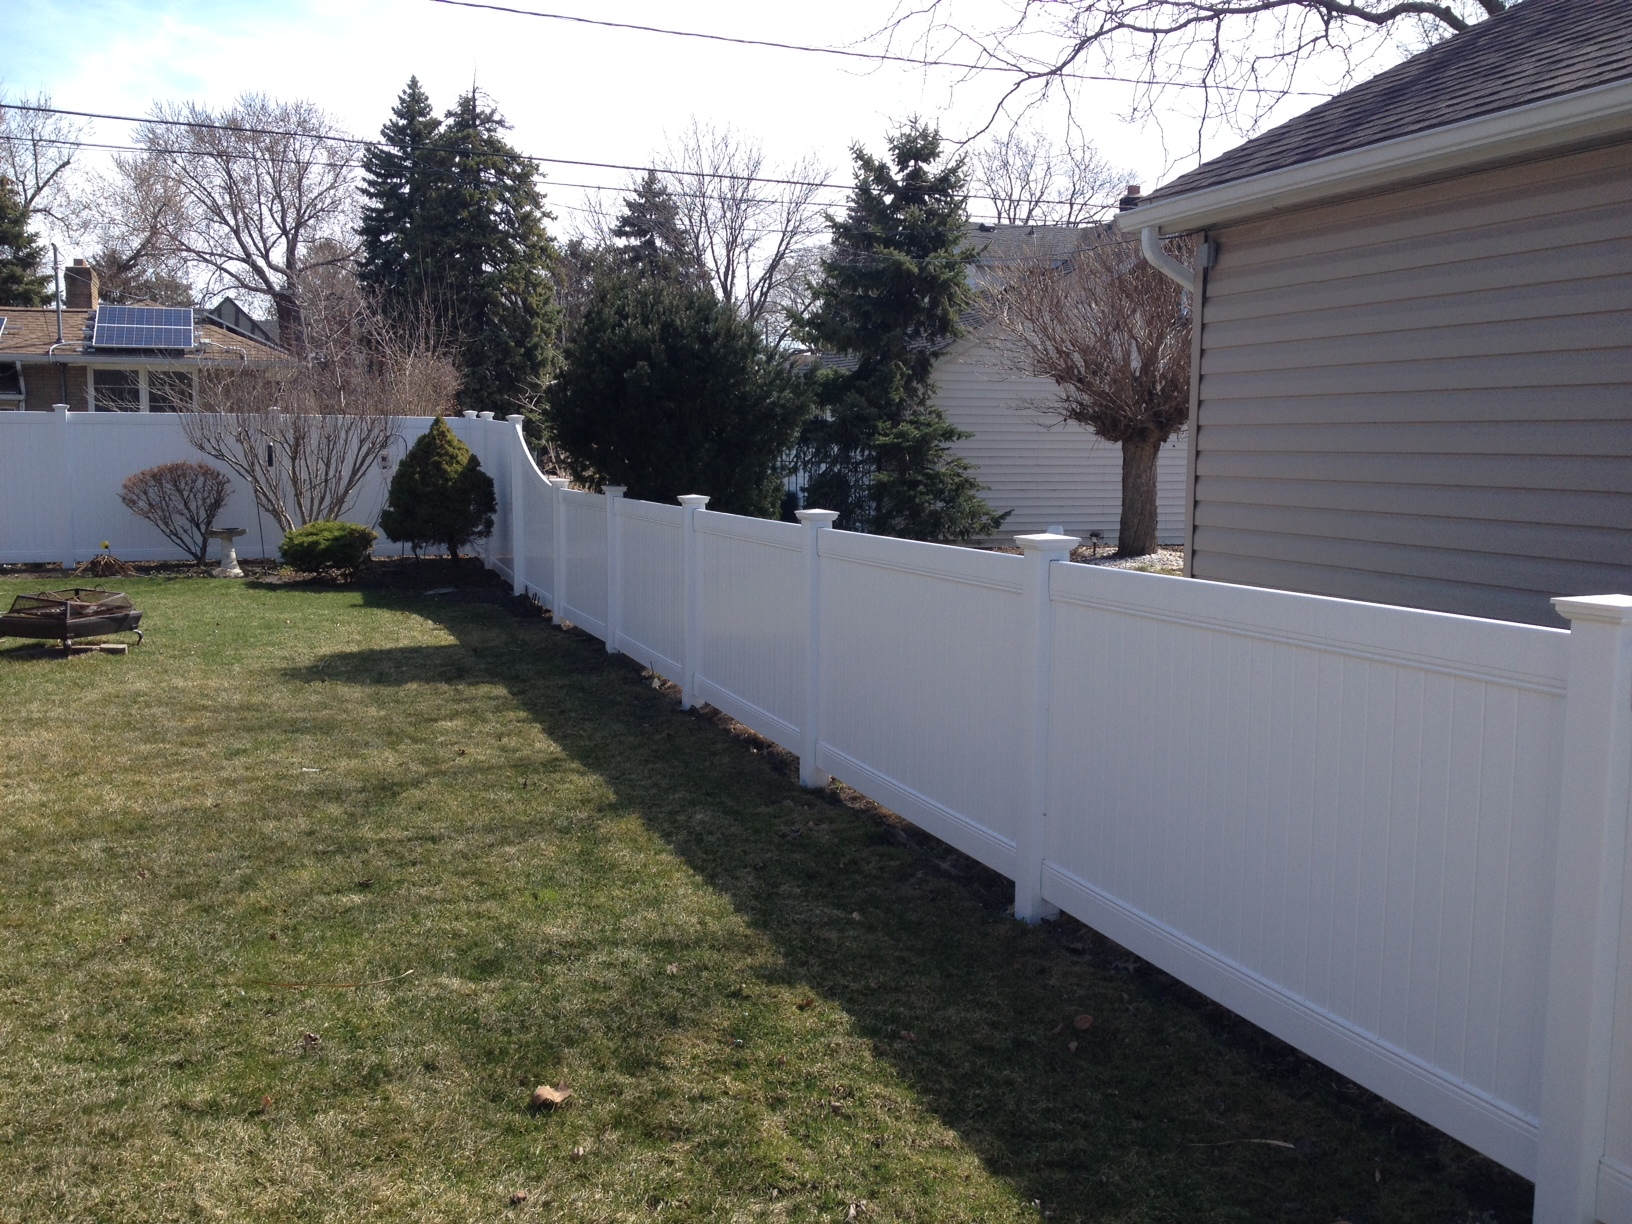 4' tall white vinyl fence transition to 6' tall